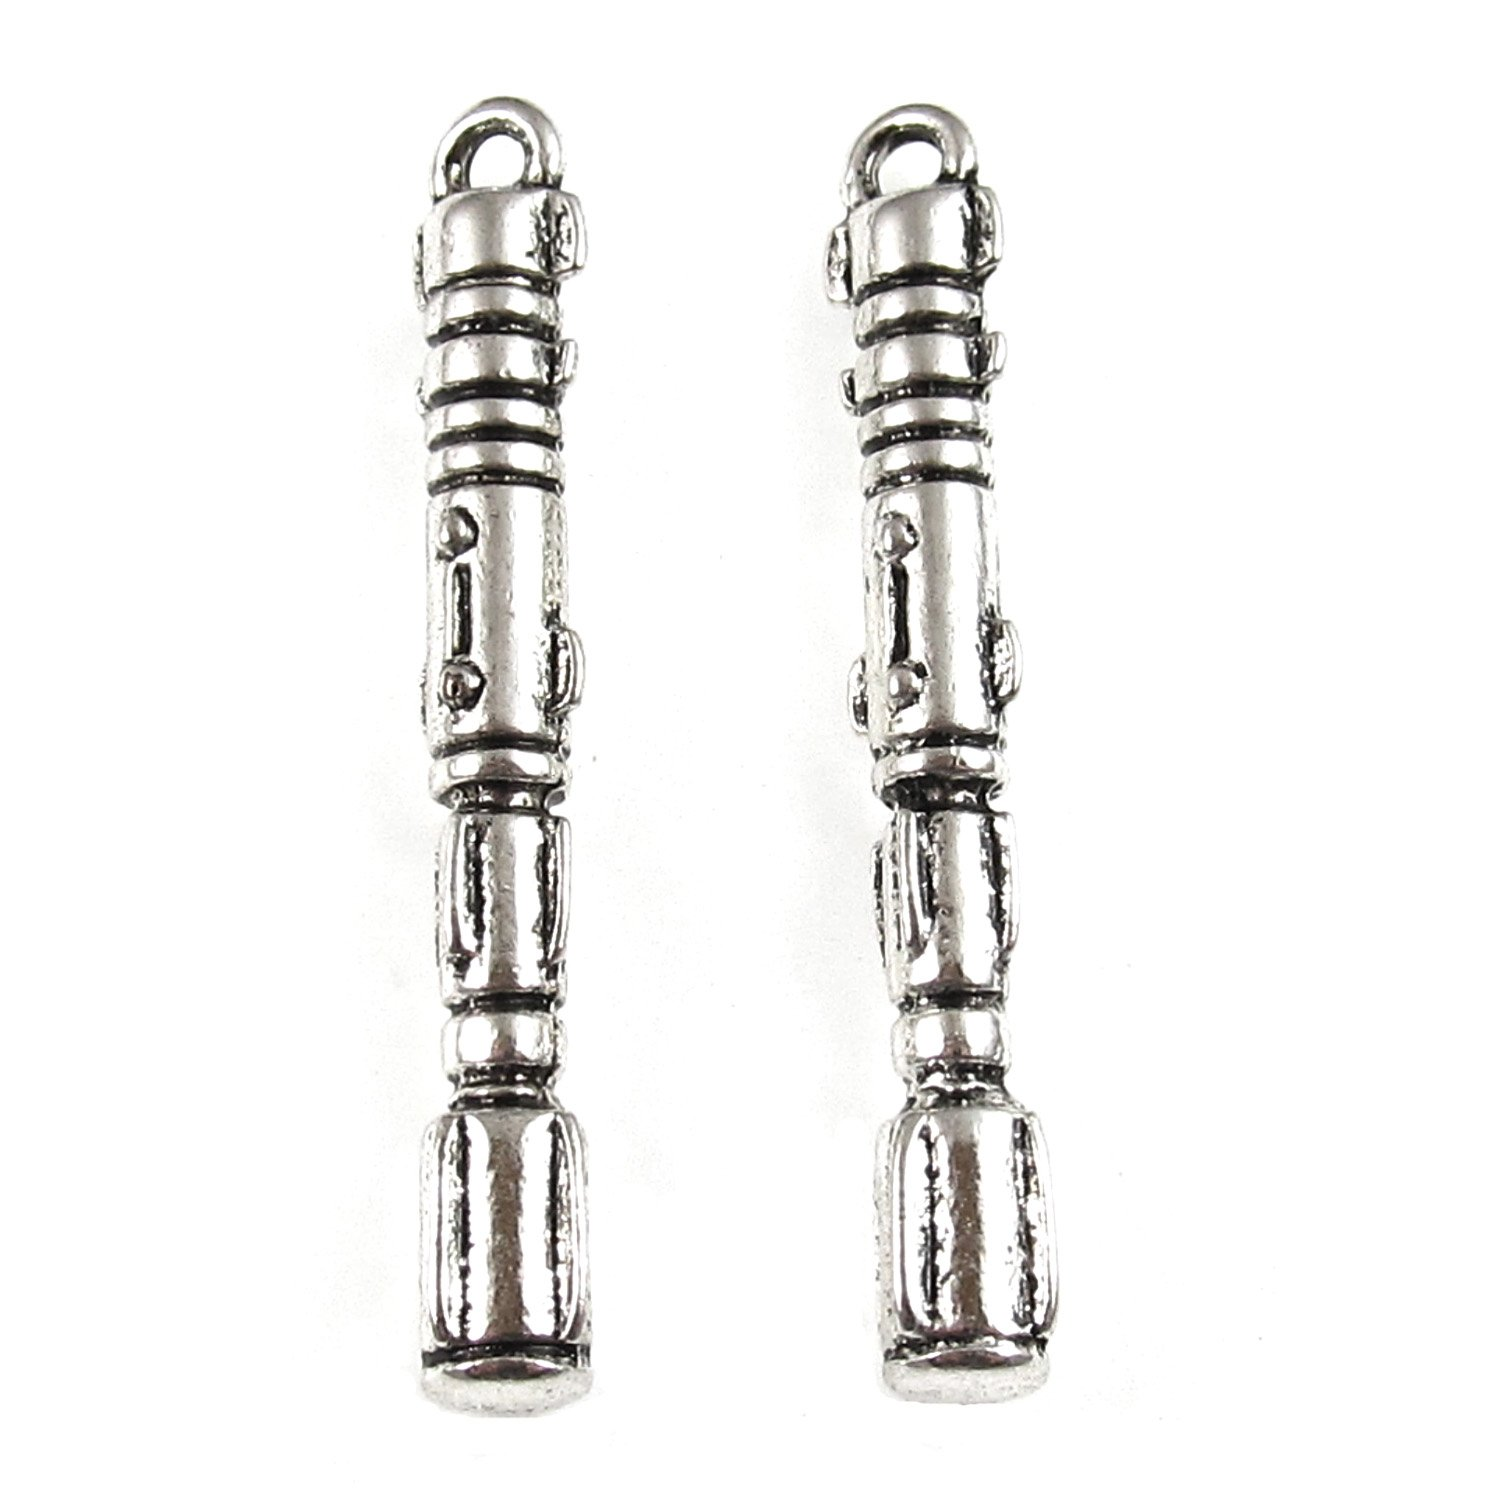 Silver Doctor Who Sonic Screwdriver Metal Charms Dr Who